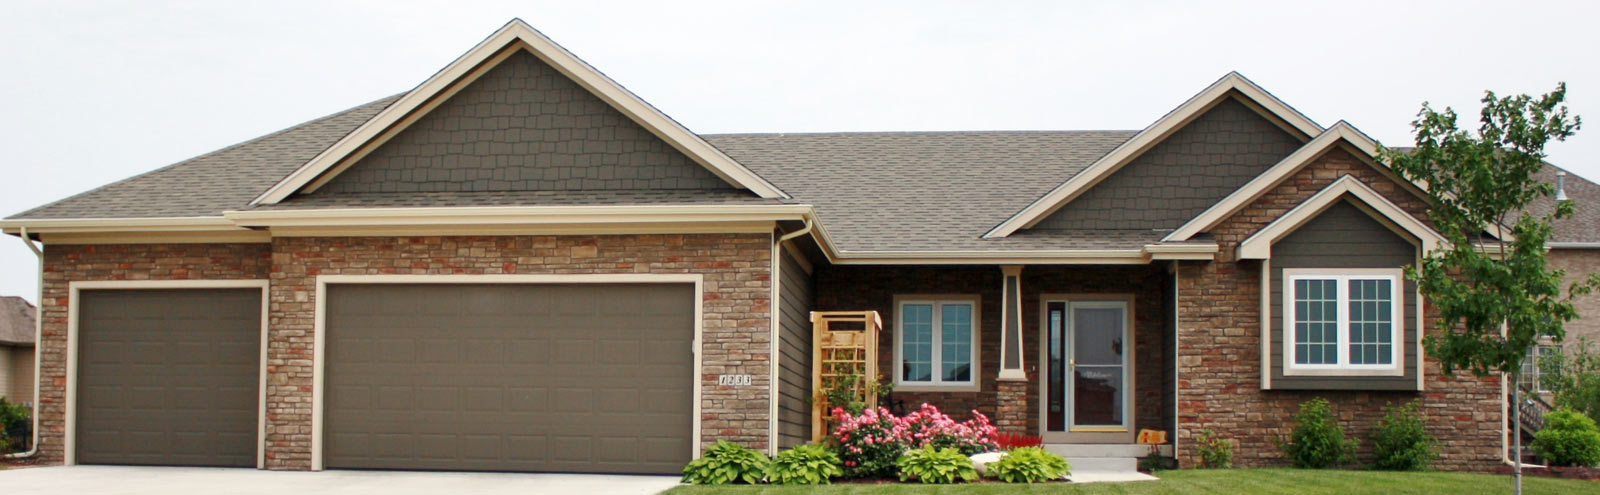 Remington homes ankeny home builders central iowa home for Home builders ankeny iowa